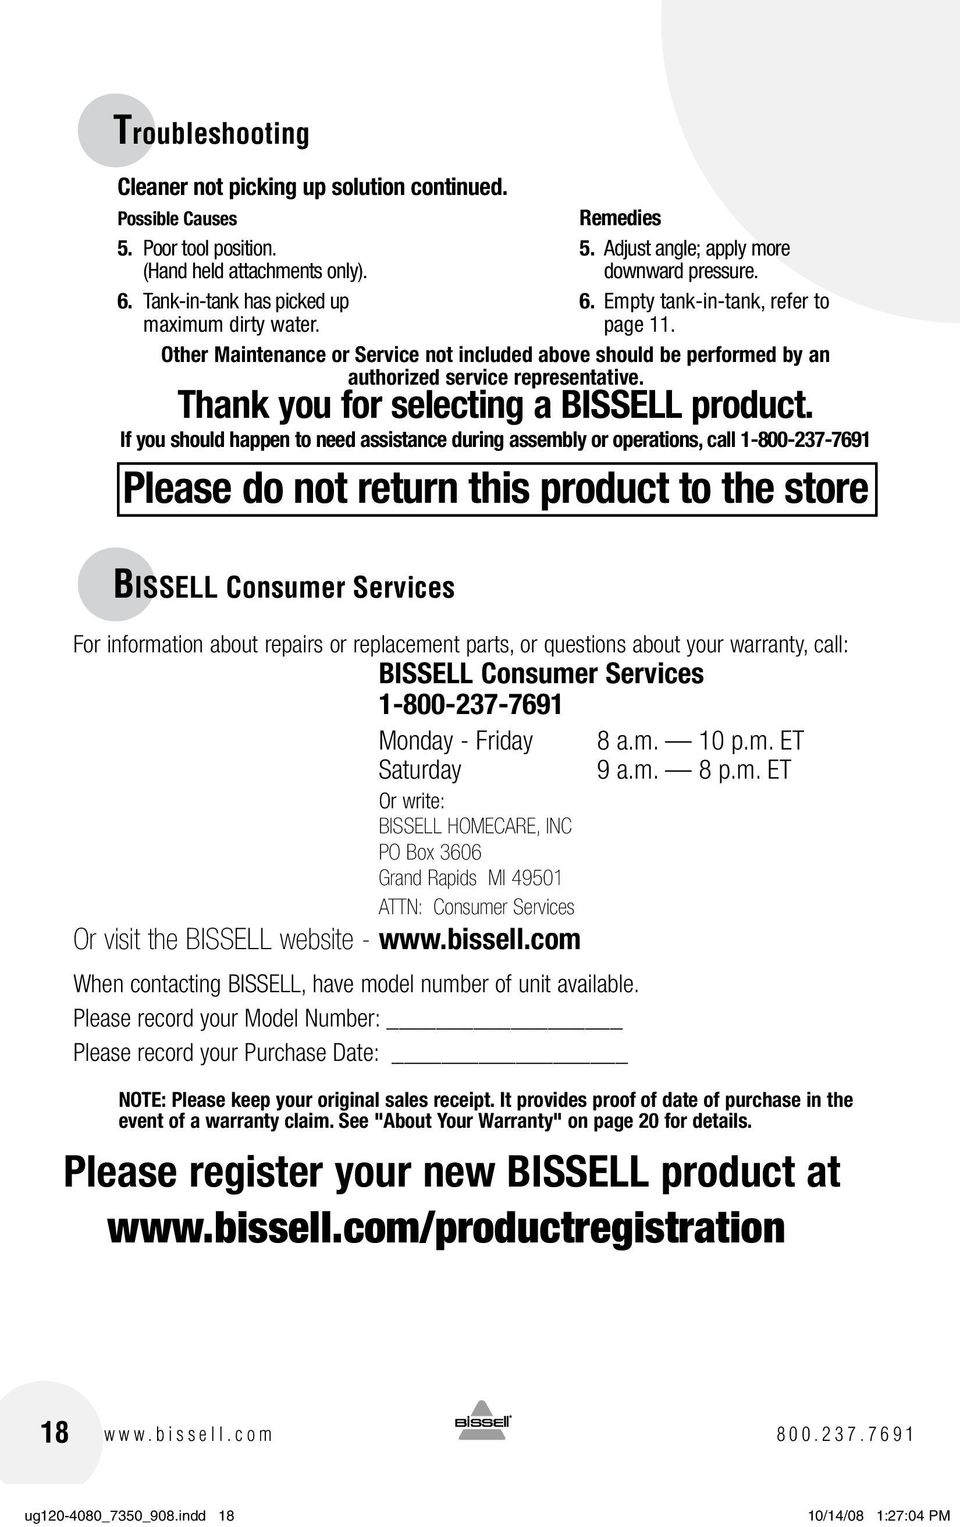 Thank you for selecting a BISSELL product.